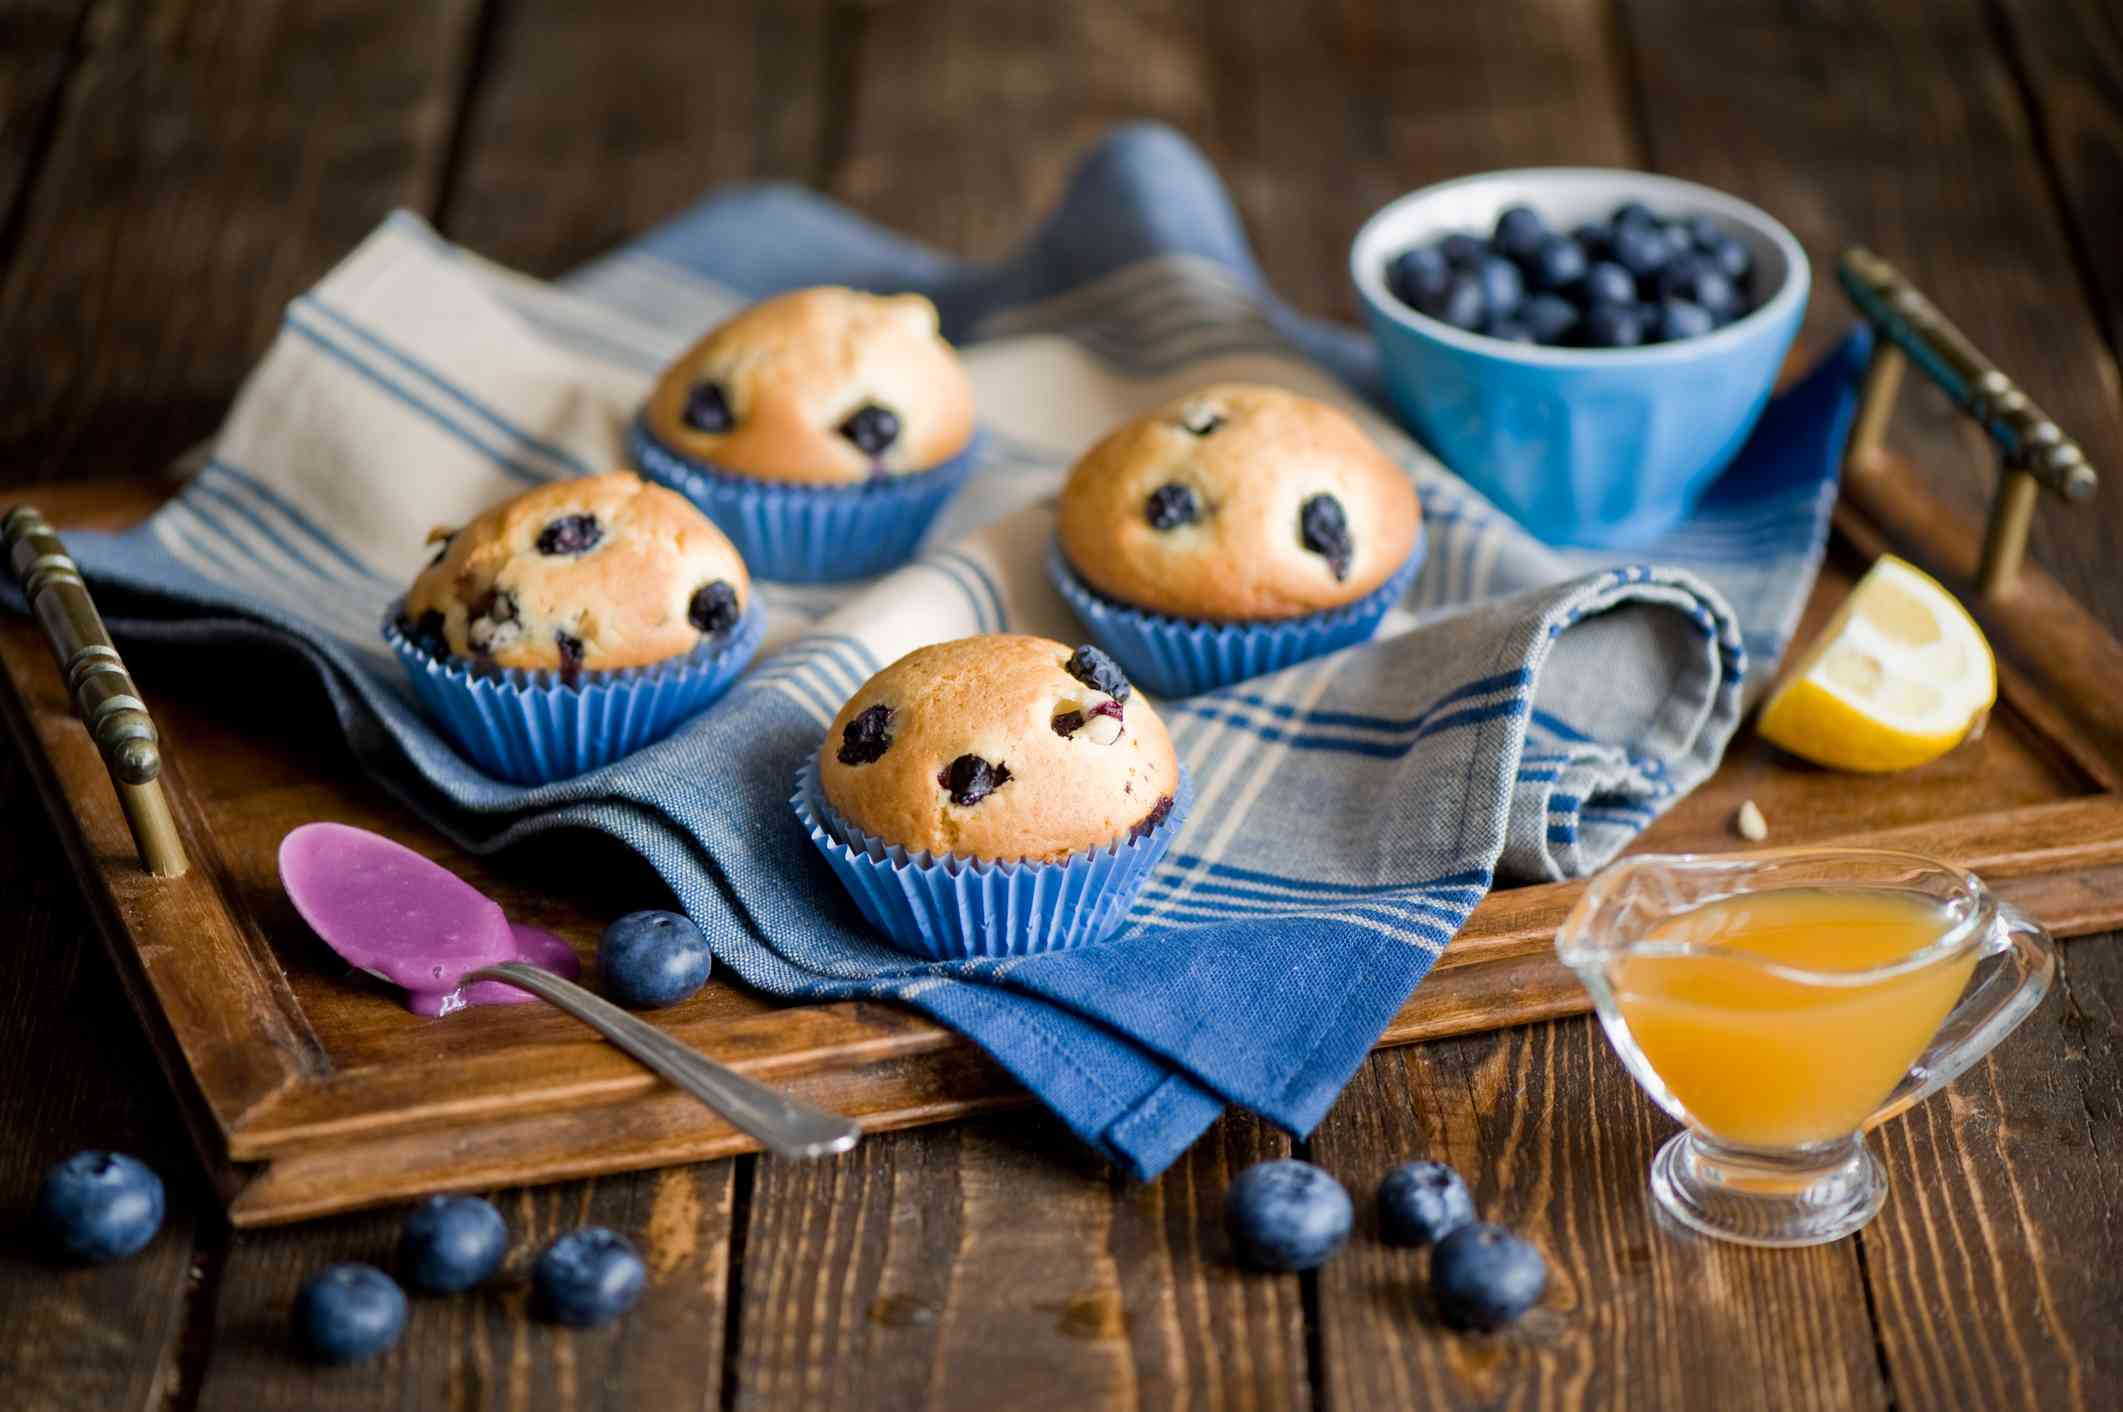 Mothers Day Recipes the Kids Can Make for Mom